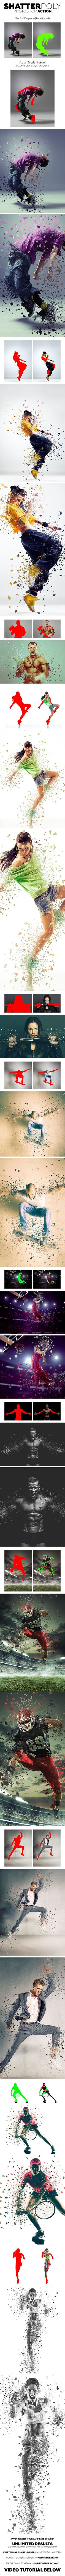 ShatterPoly Photoshop Action — Photoshop ATN #dispersion #atn